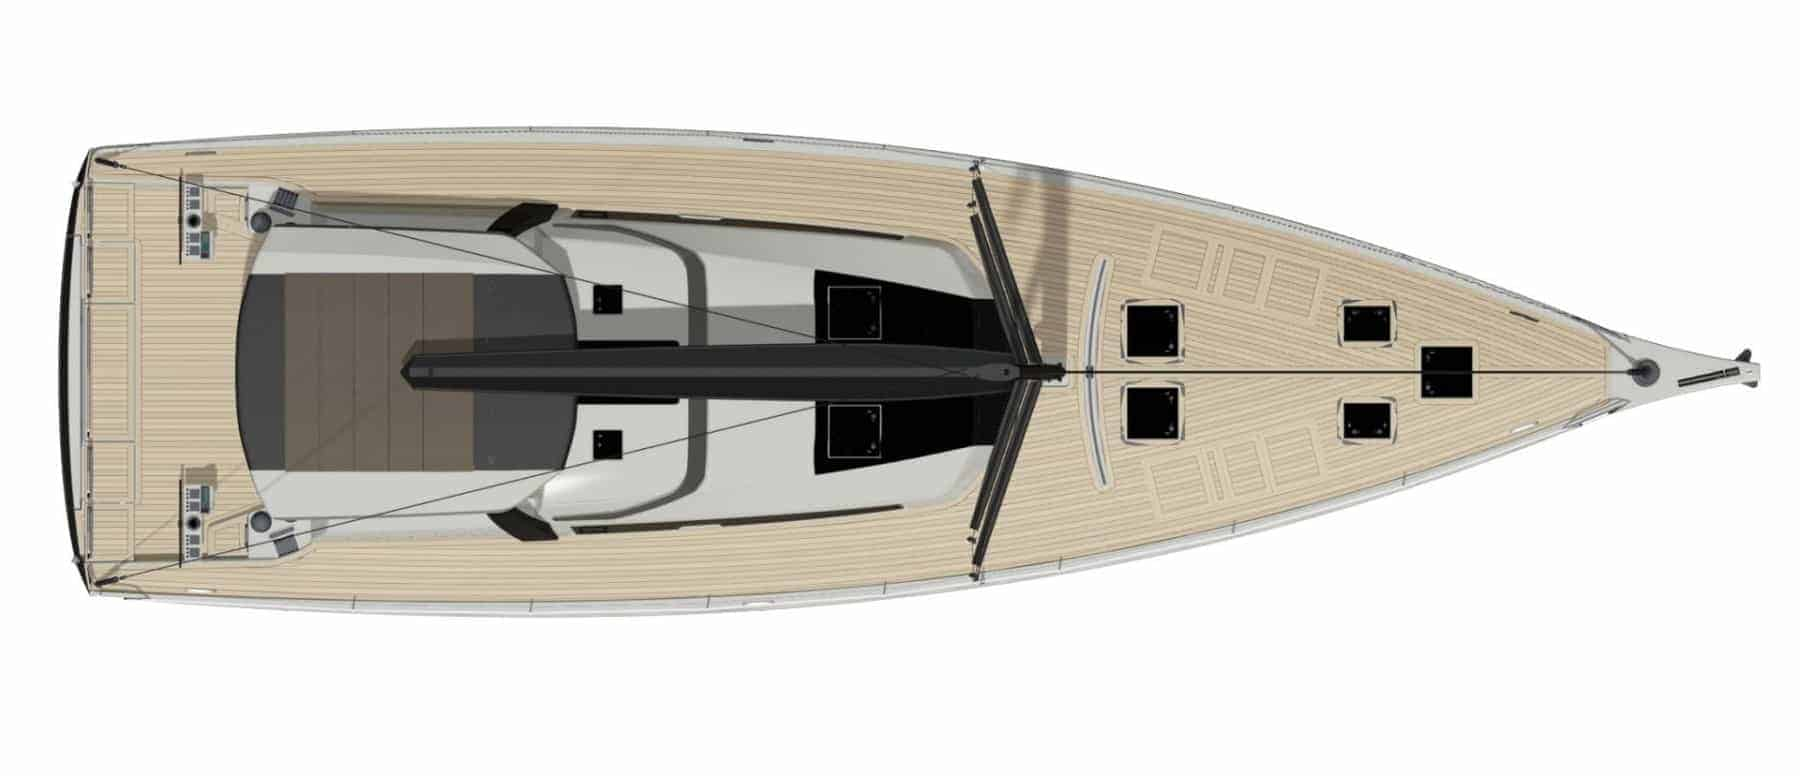 Deck layout plan of the Dufour Exclusive 63